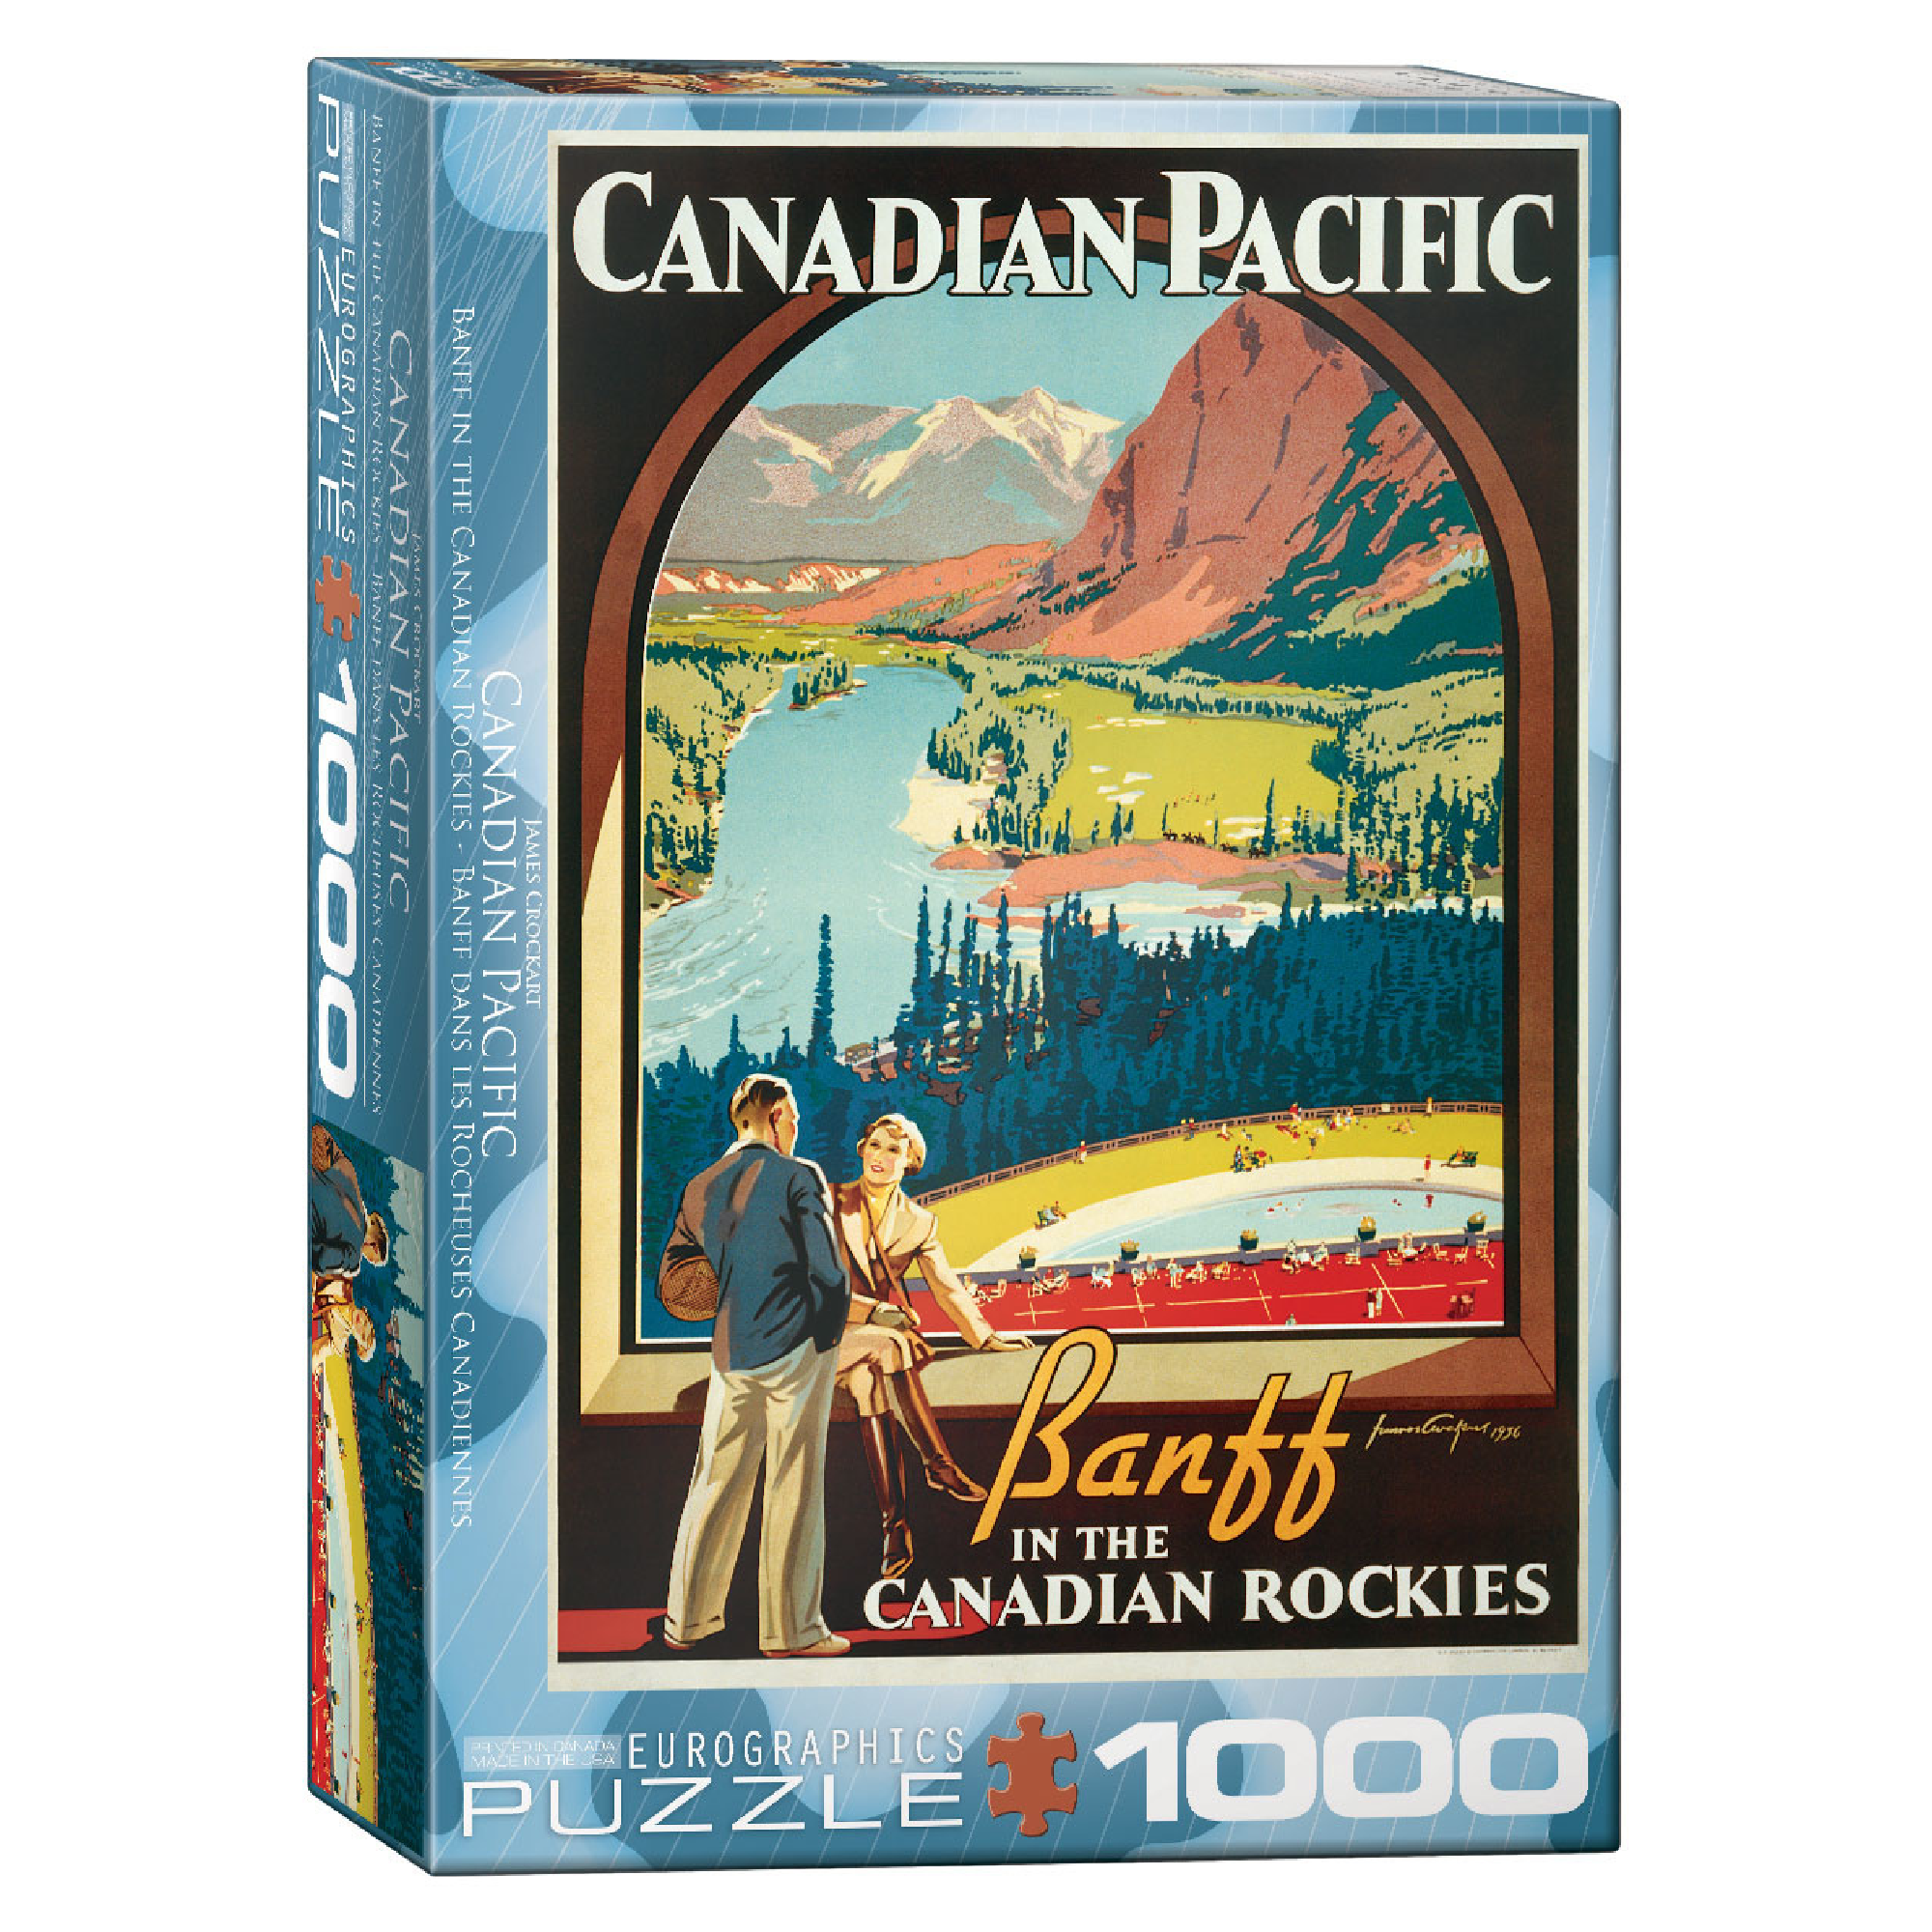 Eurographics Puzzle 1000: Banff in the Canadian Rockies by James Crockart